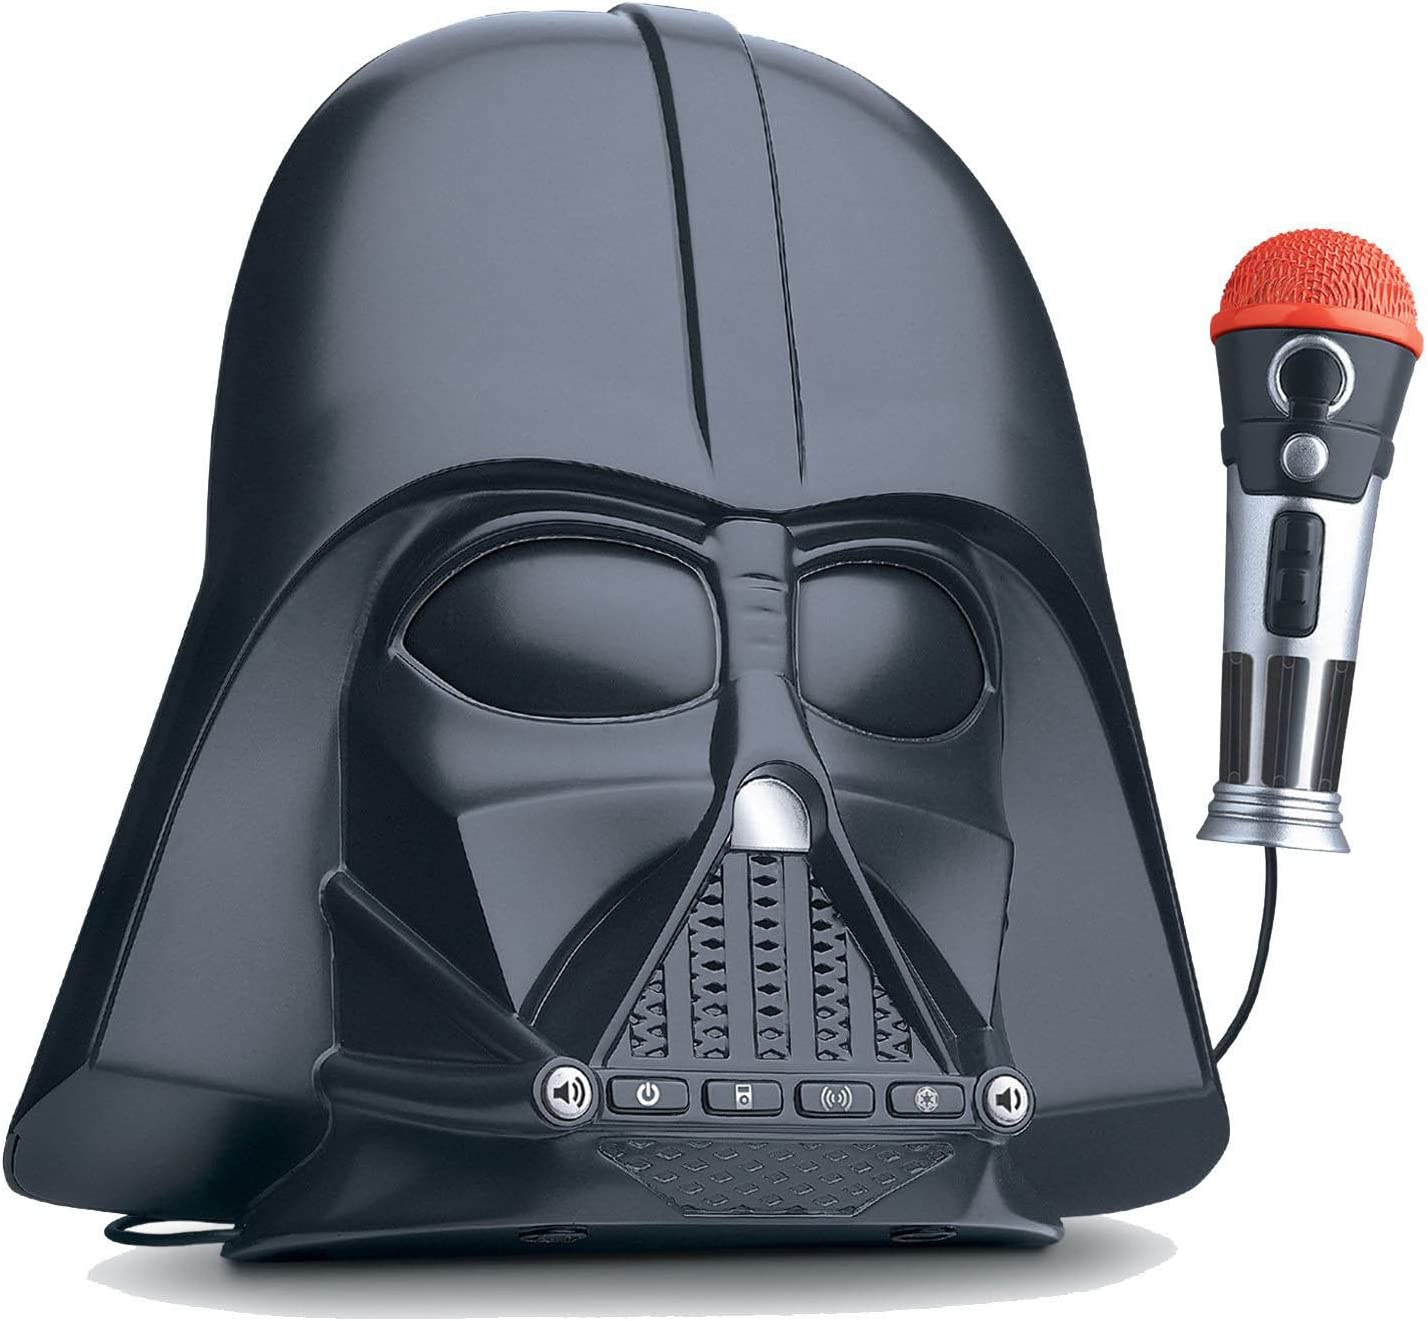 eKids Star Wars Darth Vader Voice Changing Boombox Connects to MP3 Player Darth Vader Phrases Sound Effects from The Star Wars Saga and More